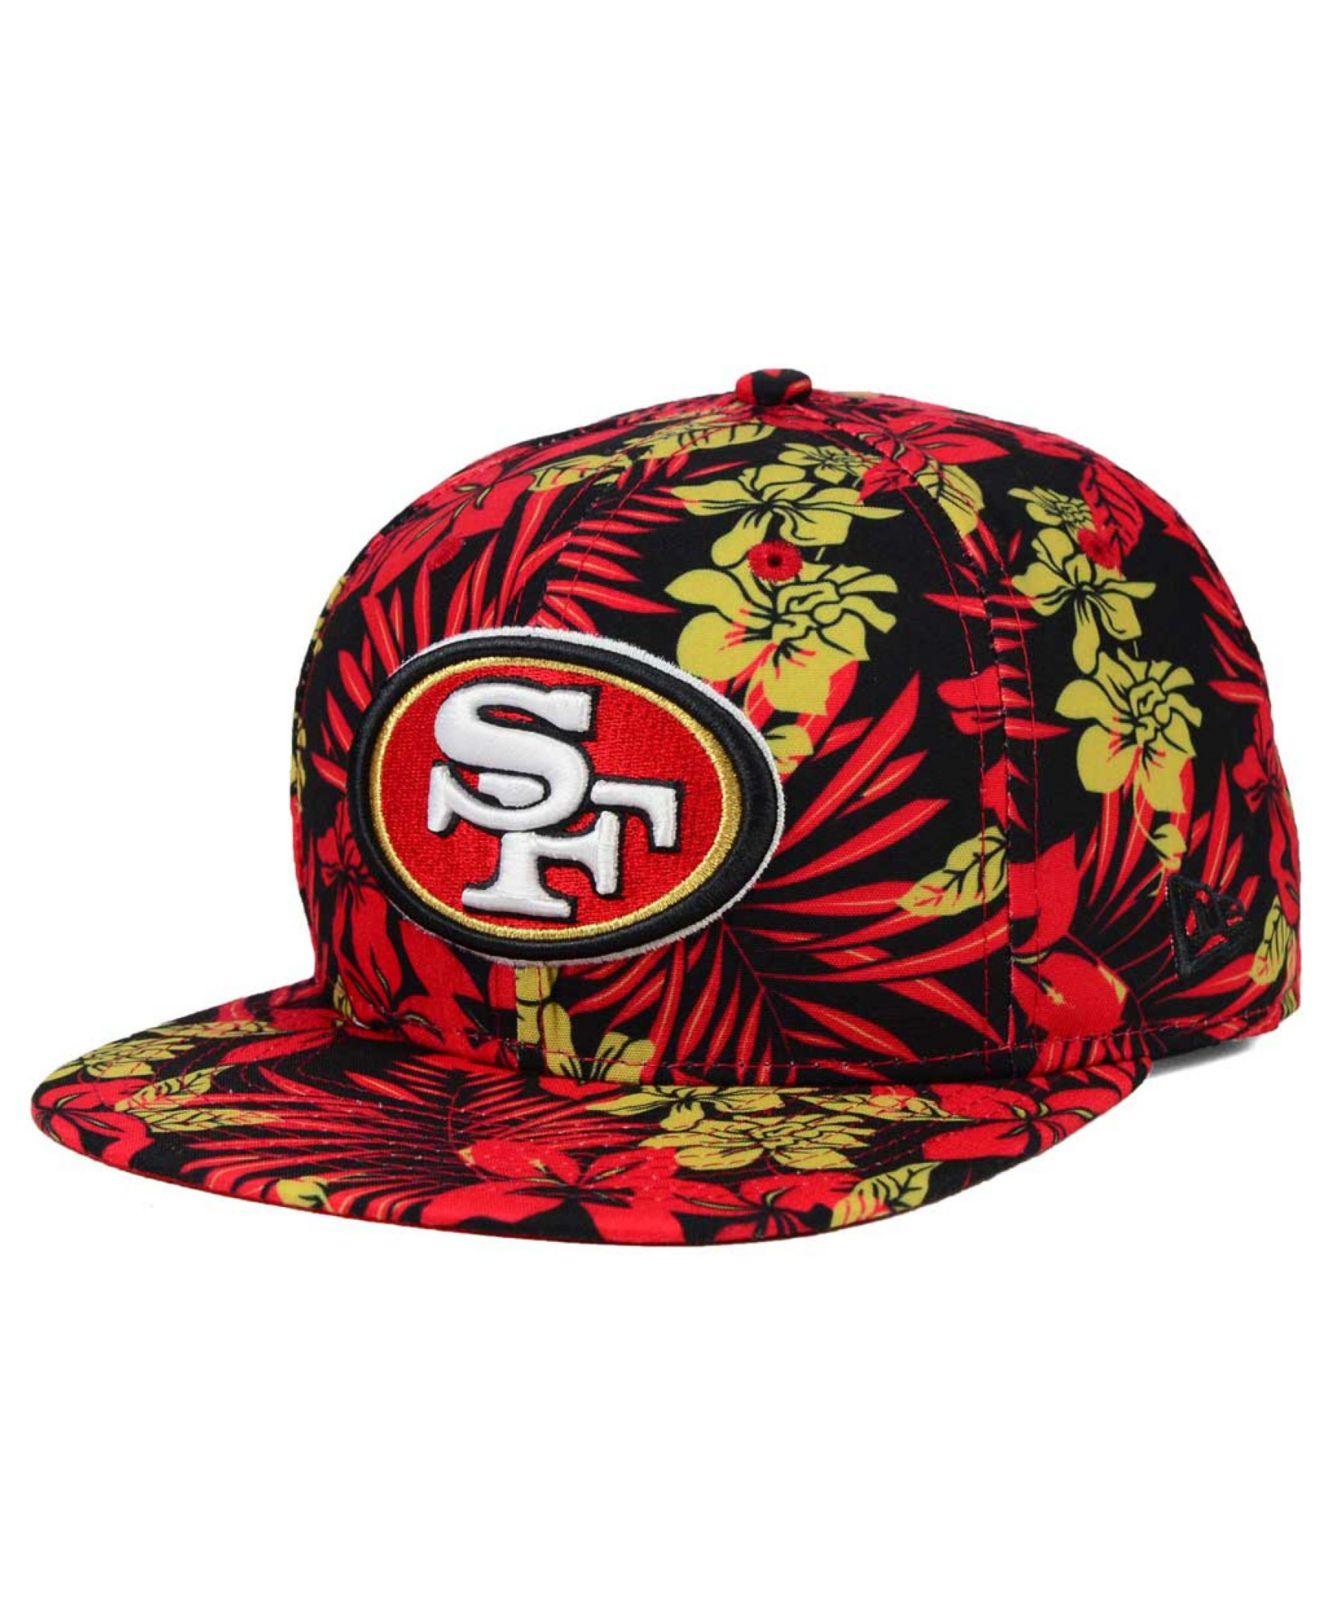 size 40 4b9ea a888a ... clearance discount lyst ktz san francisco 49ers wowie snapback cap in  red for men bcb4d 2170a